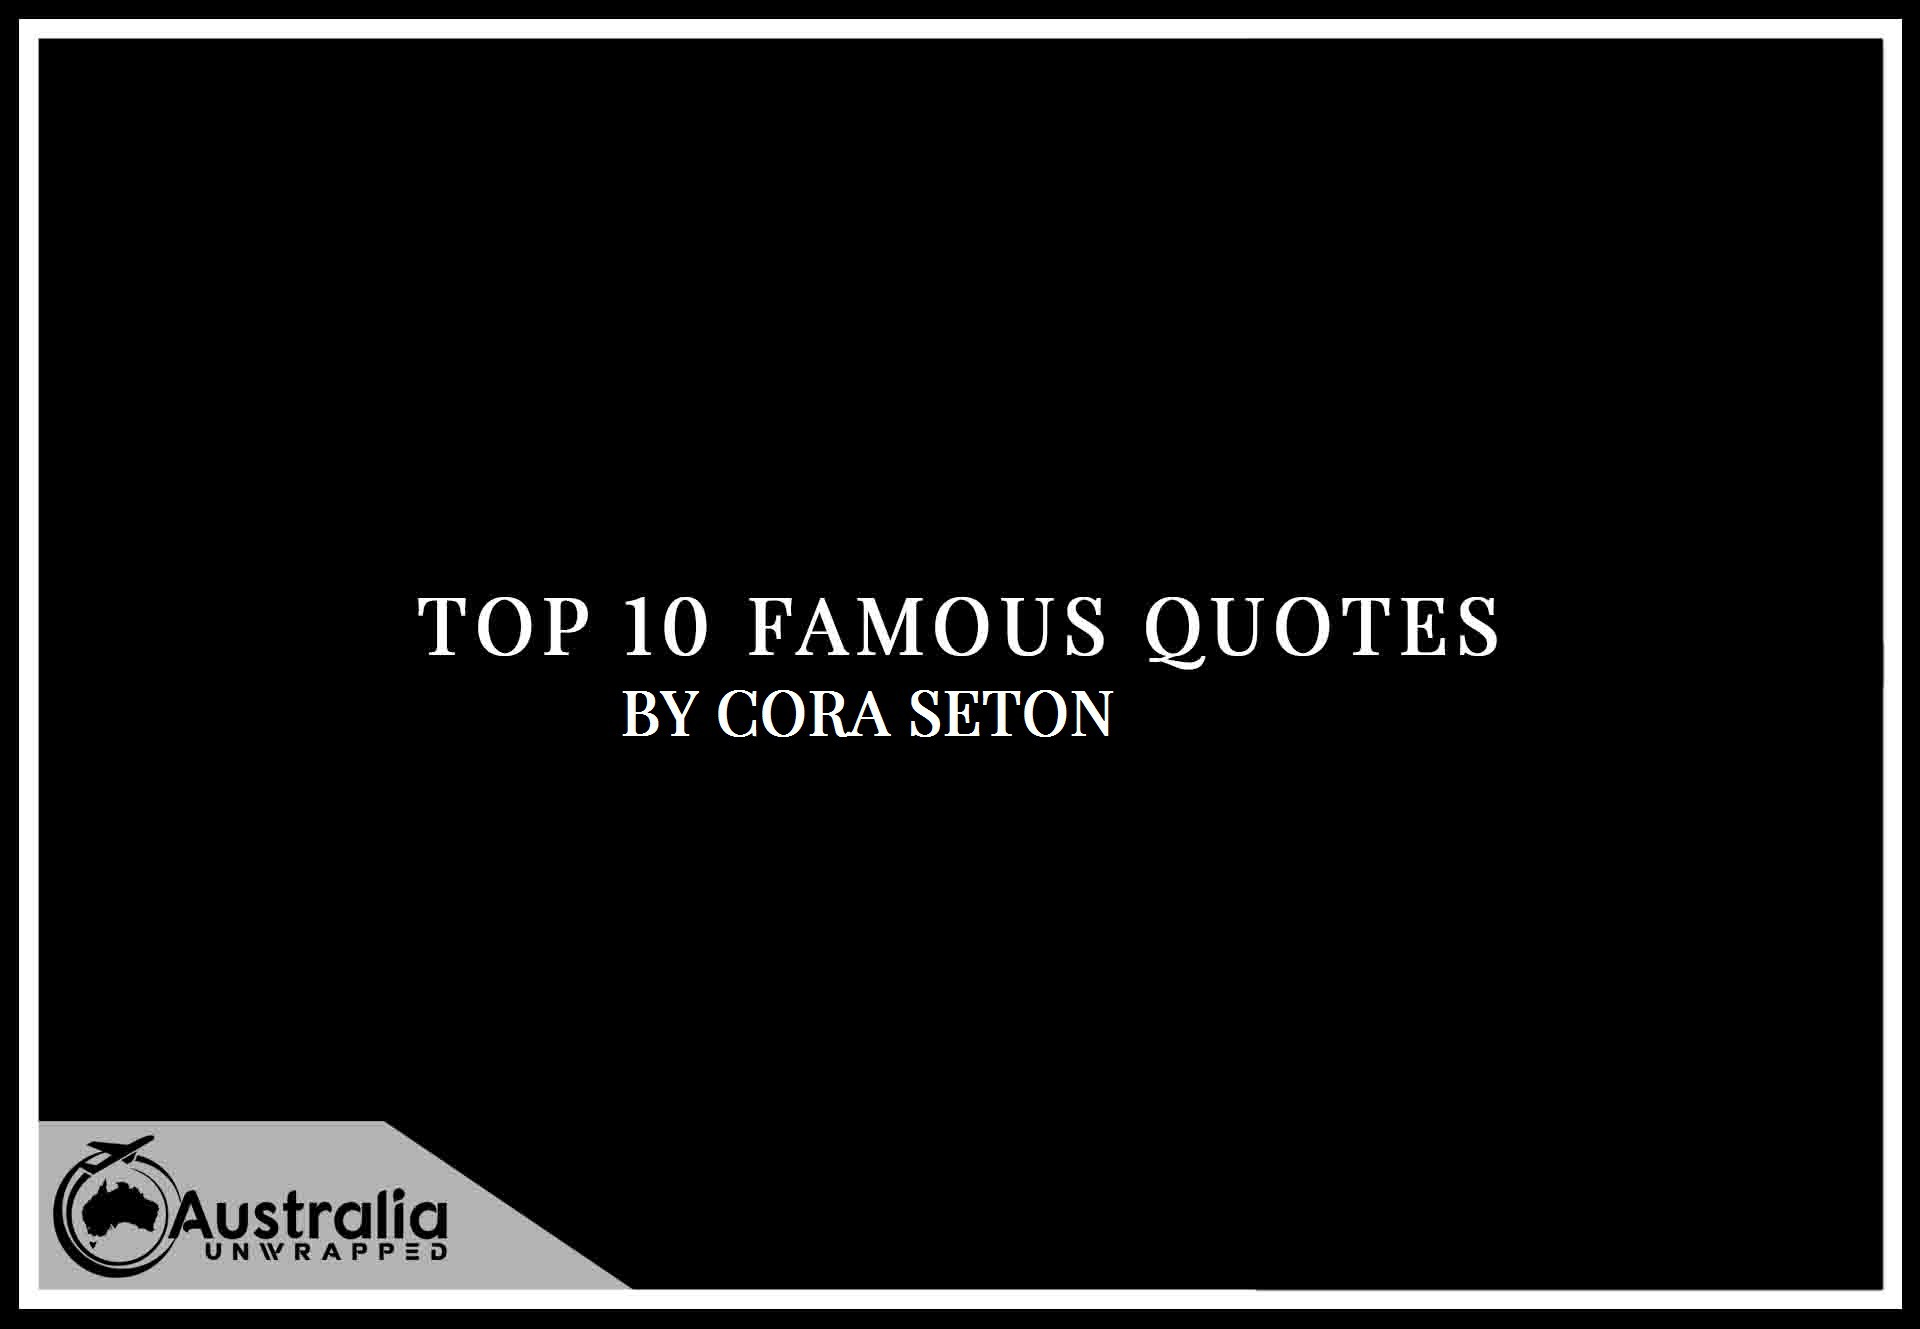 Cora Seton's Top 10 Popular and Famous Quotes